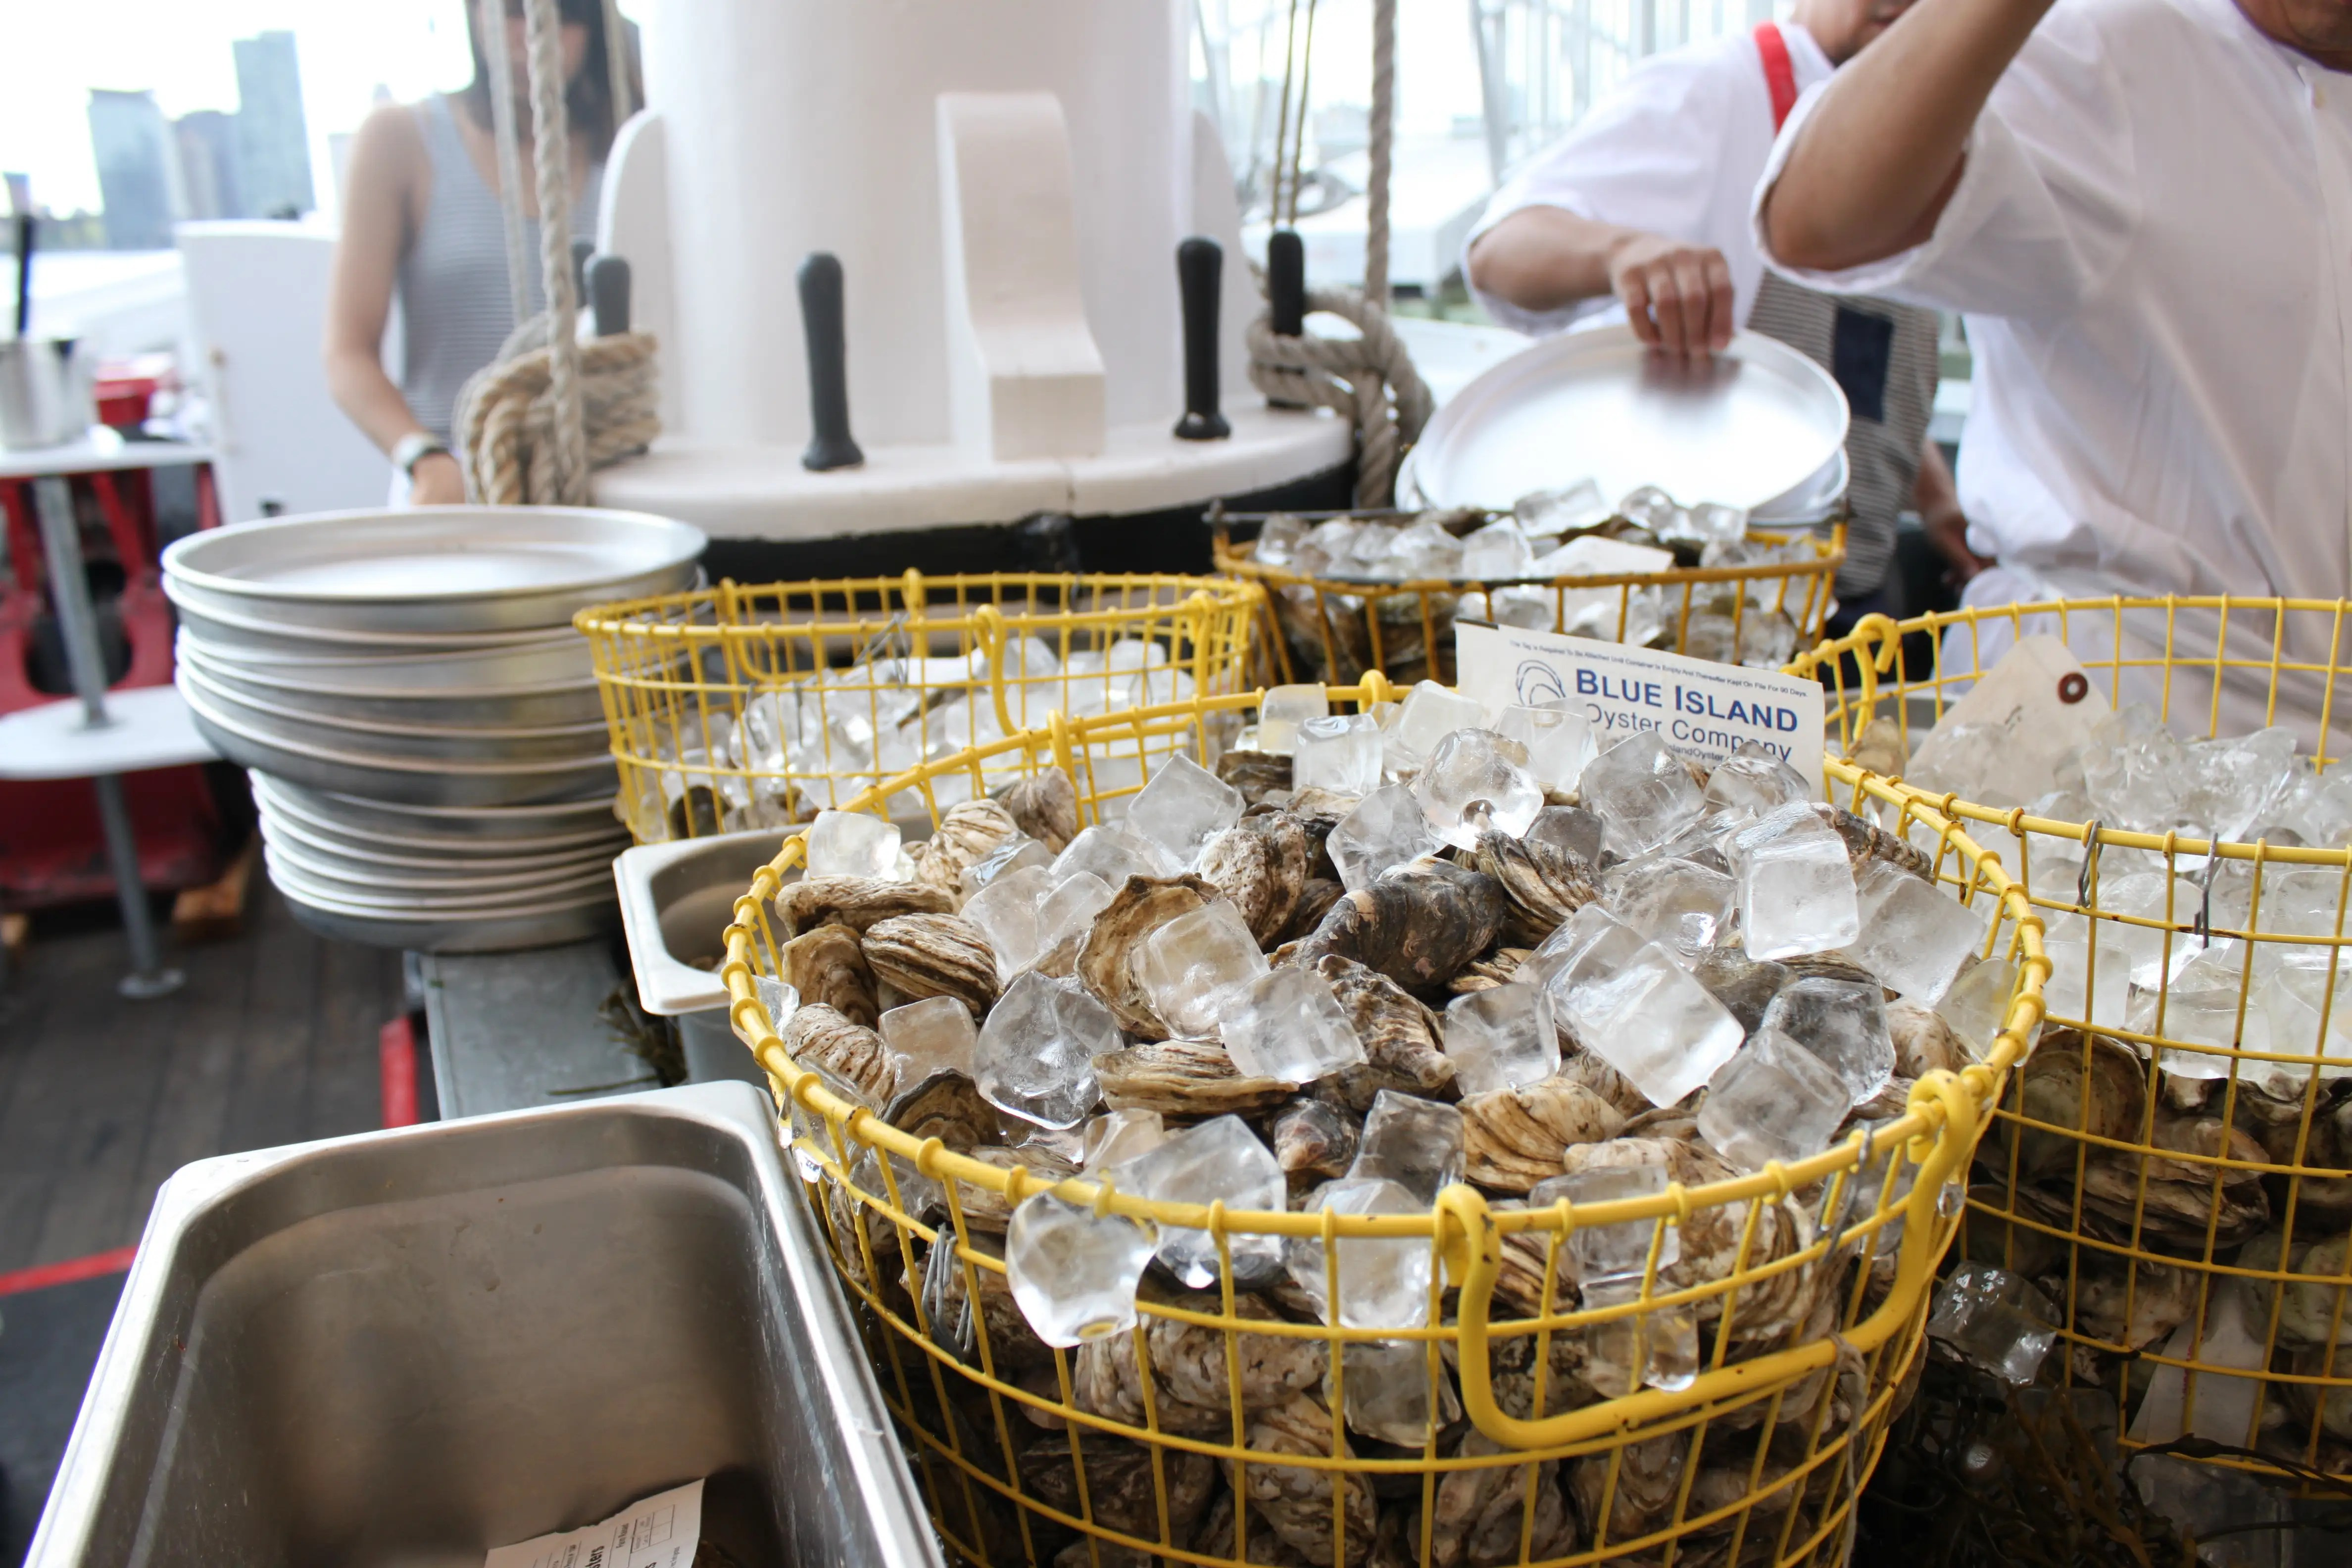 The oysters are all sustainably sourced from various areas around the Pacific and Atlantic oceans, and trust us, they are delicious.